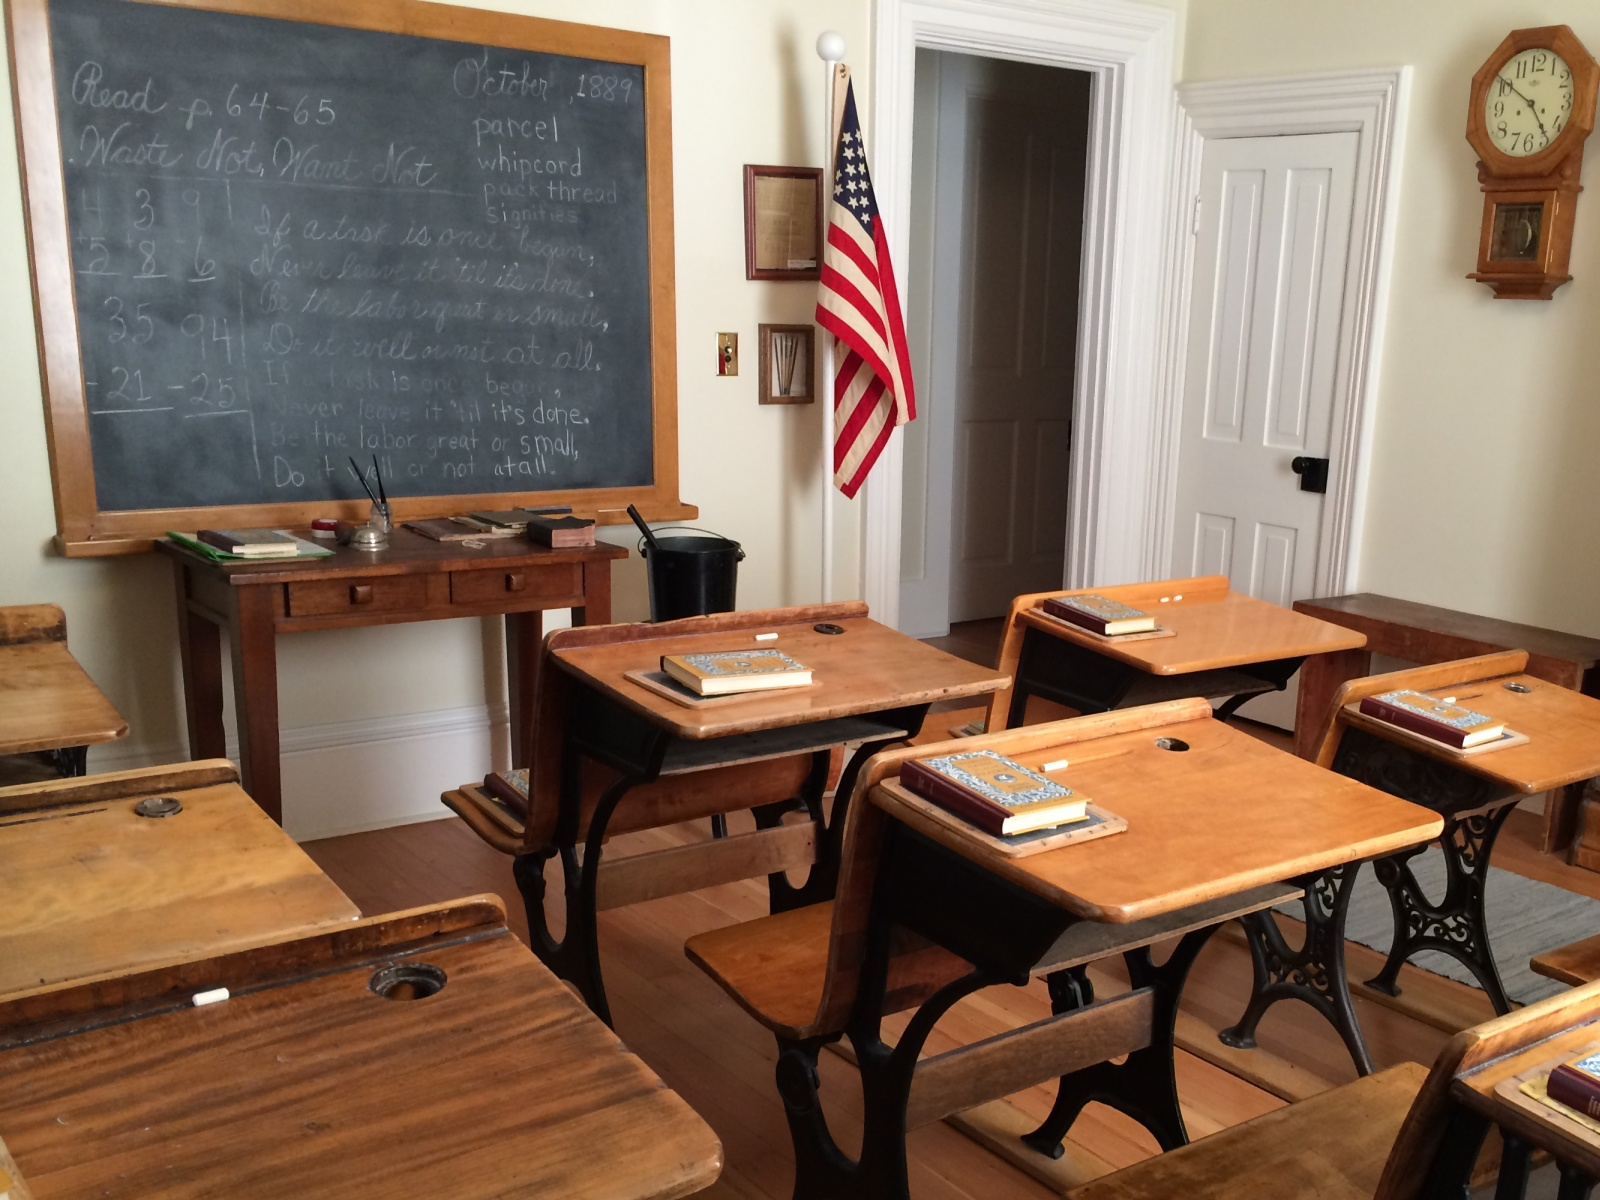 School Room in the Bown House